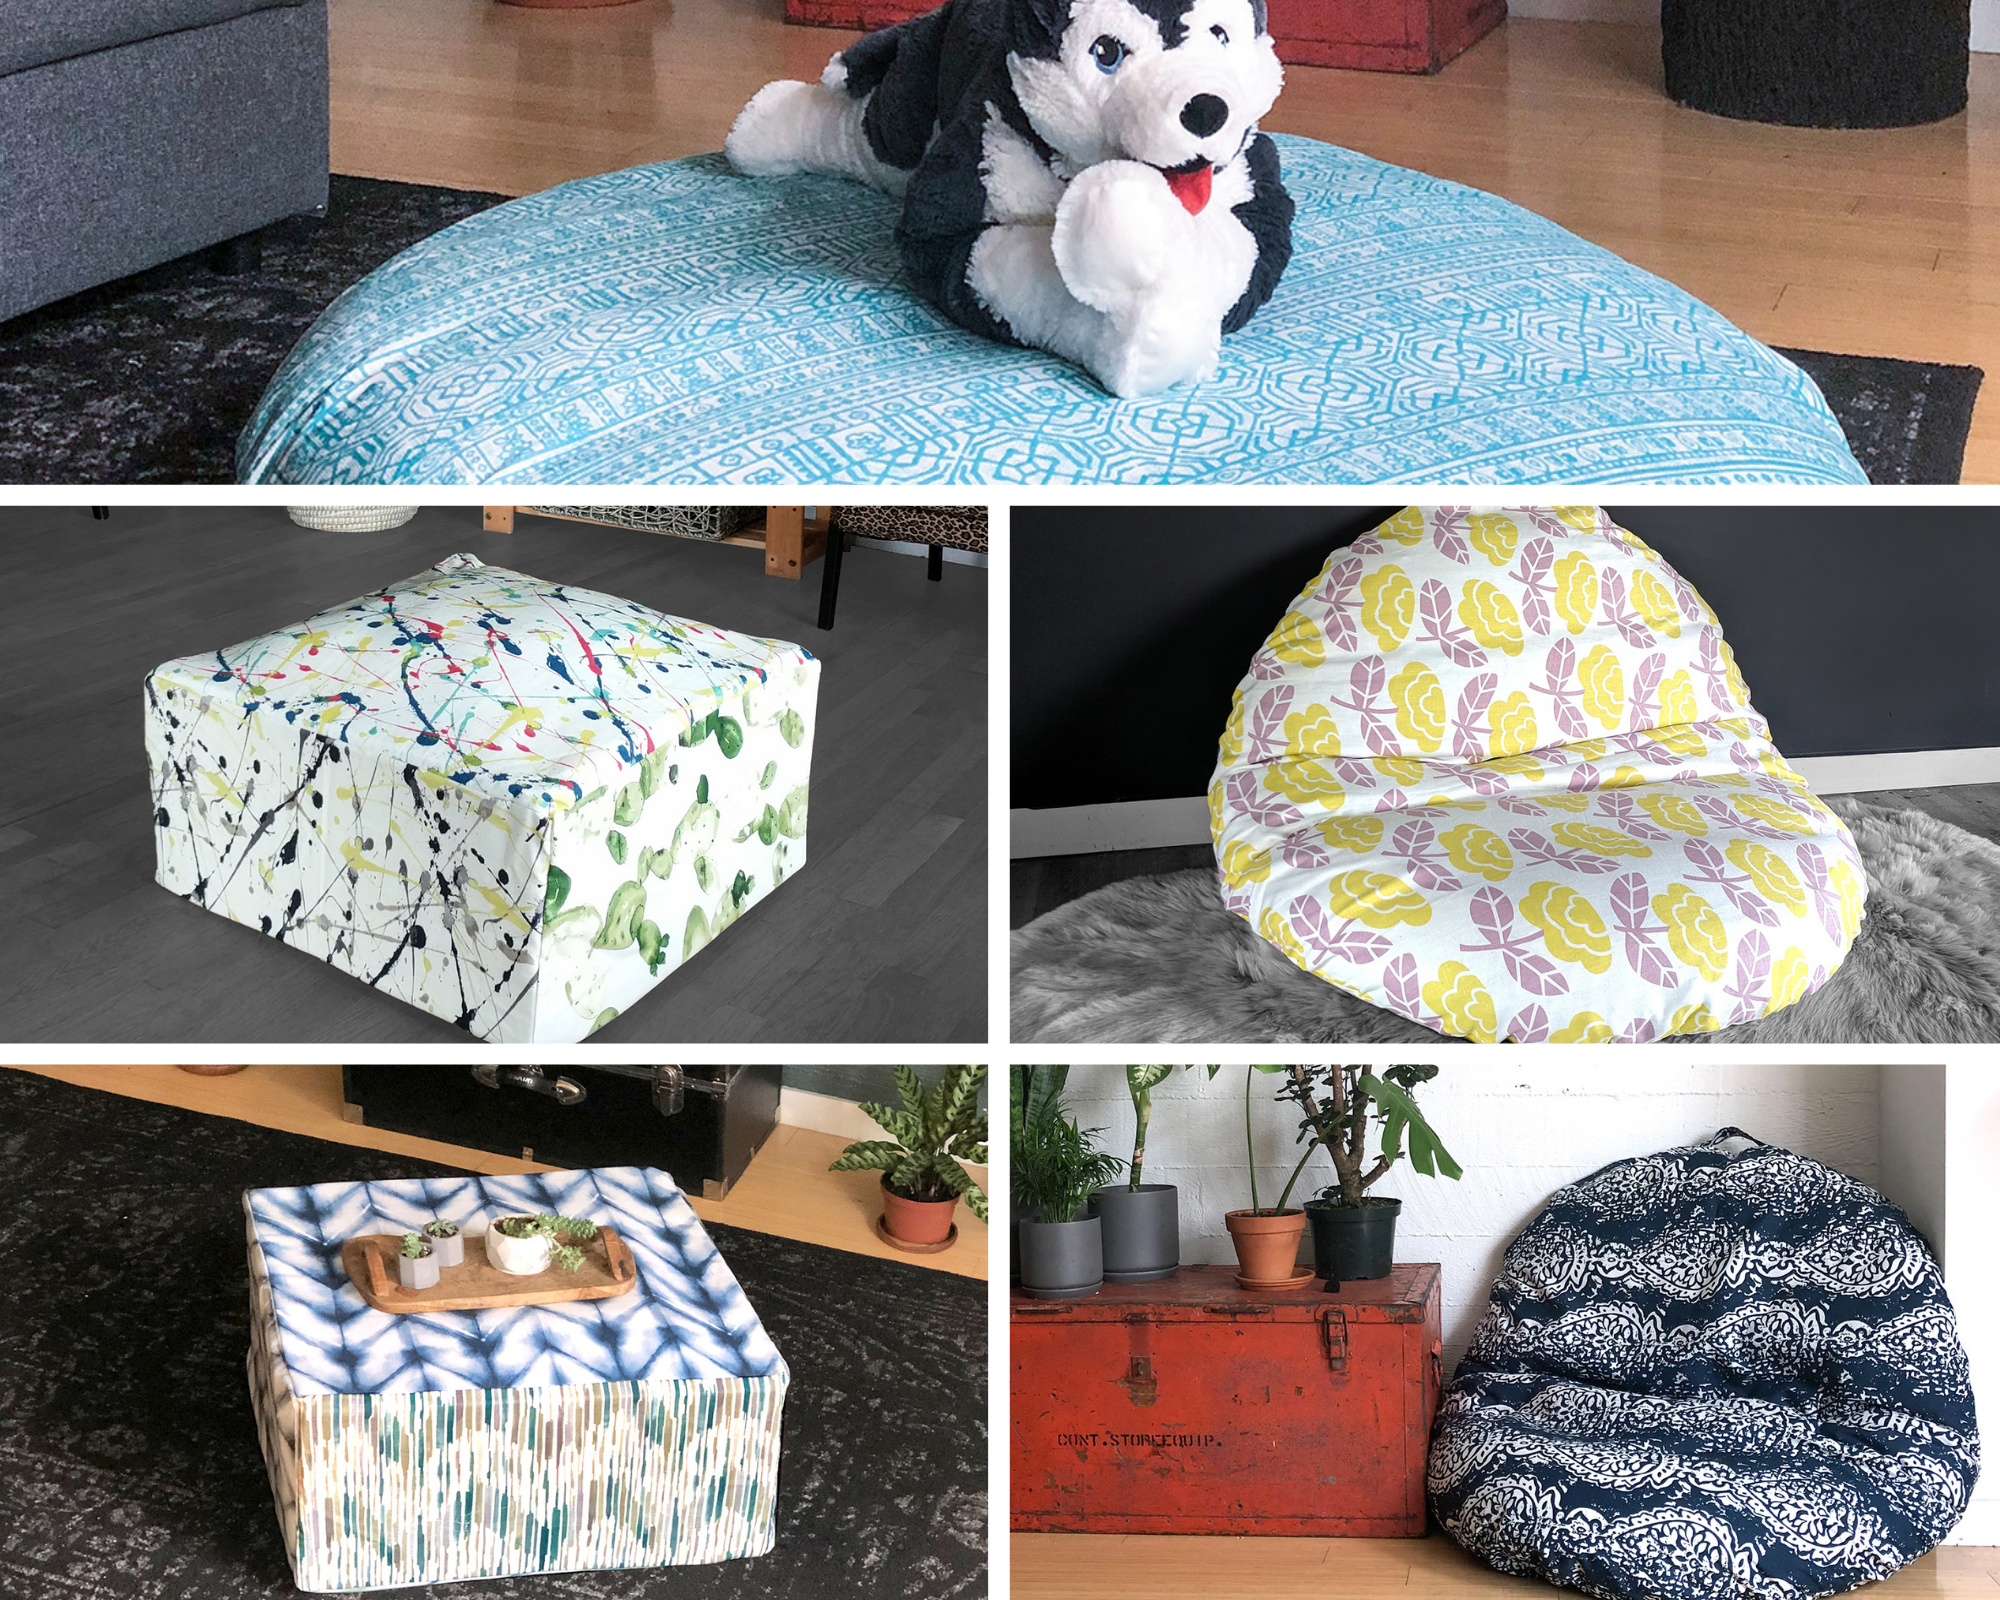 c: Floor Pouf and Beanbag Covers